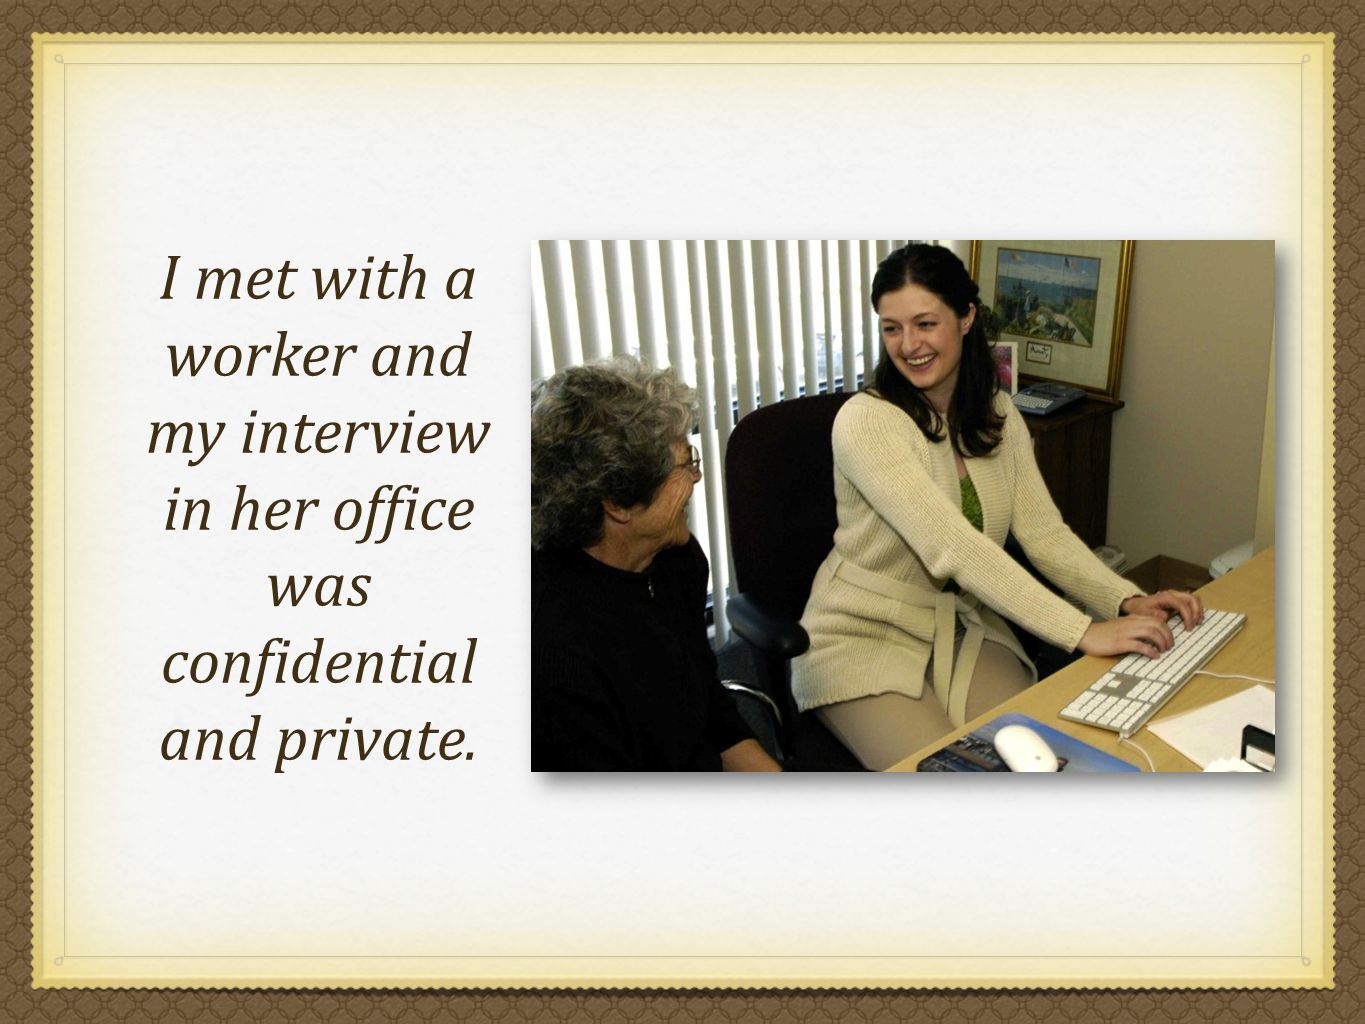 I met with a worker and my interview in her office was confidential and private.